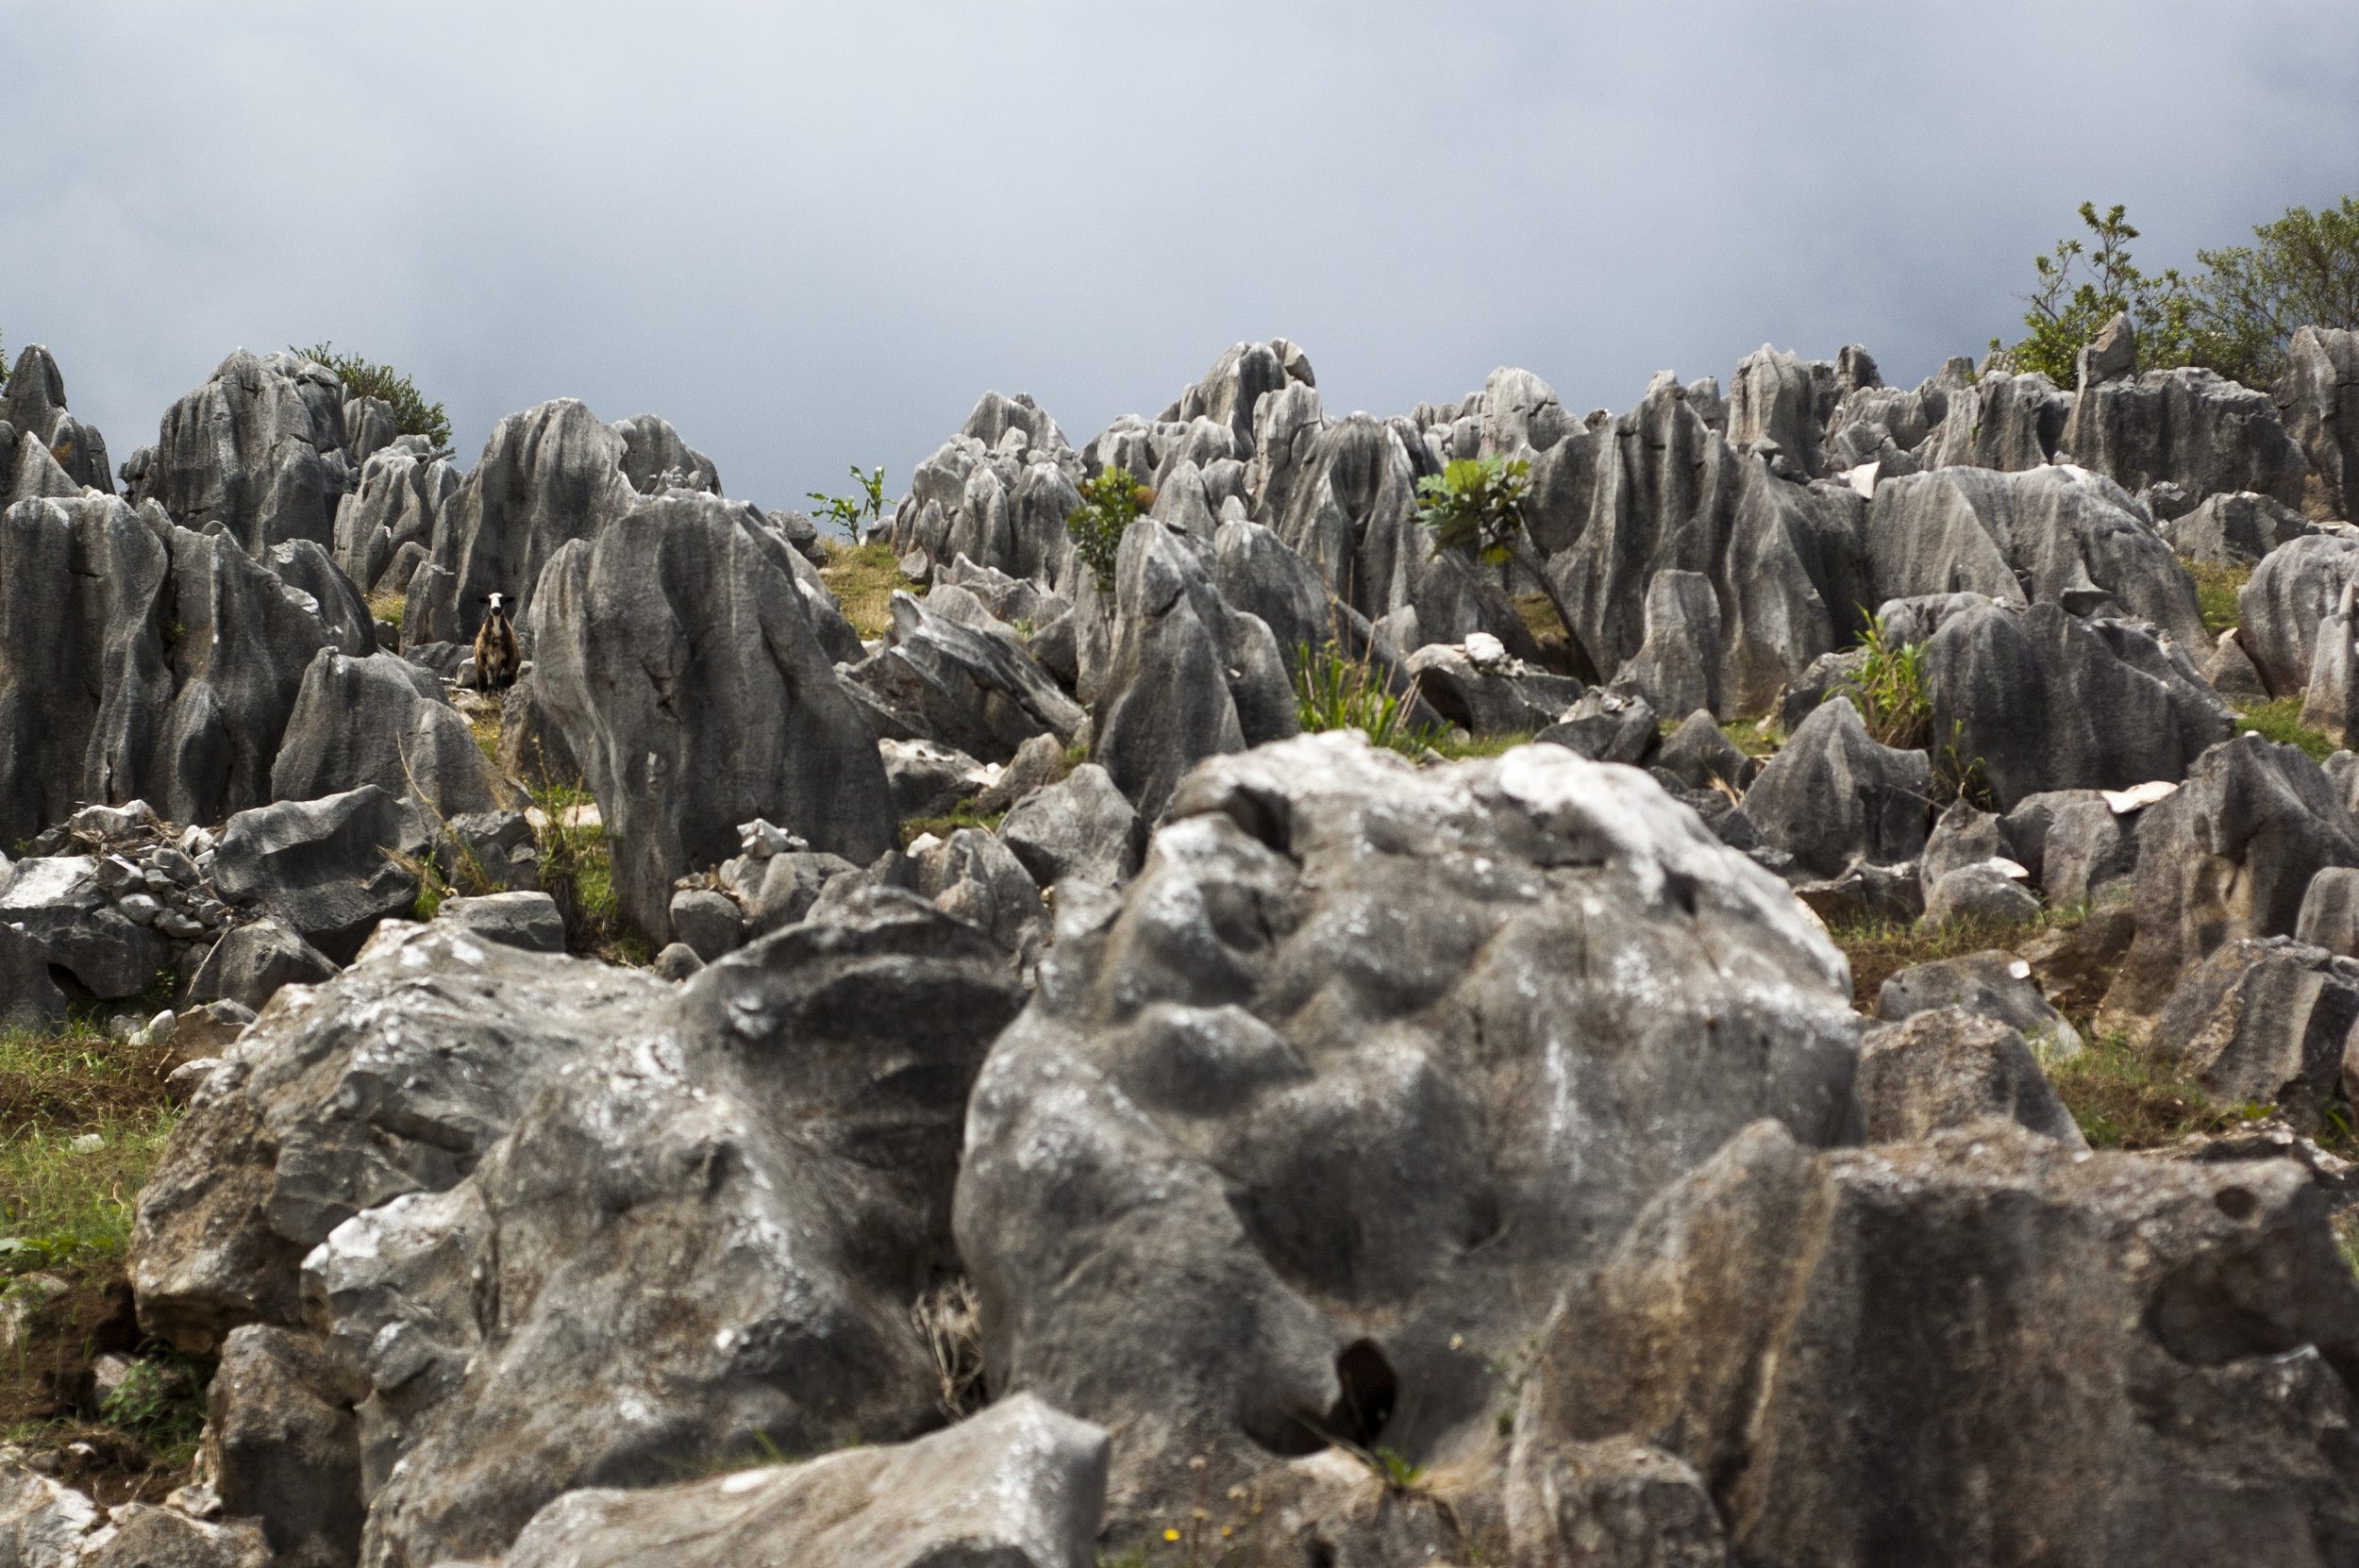 Rock formation caused by soil erosion